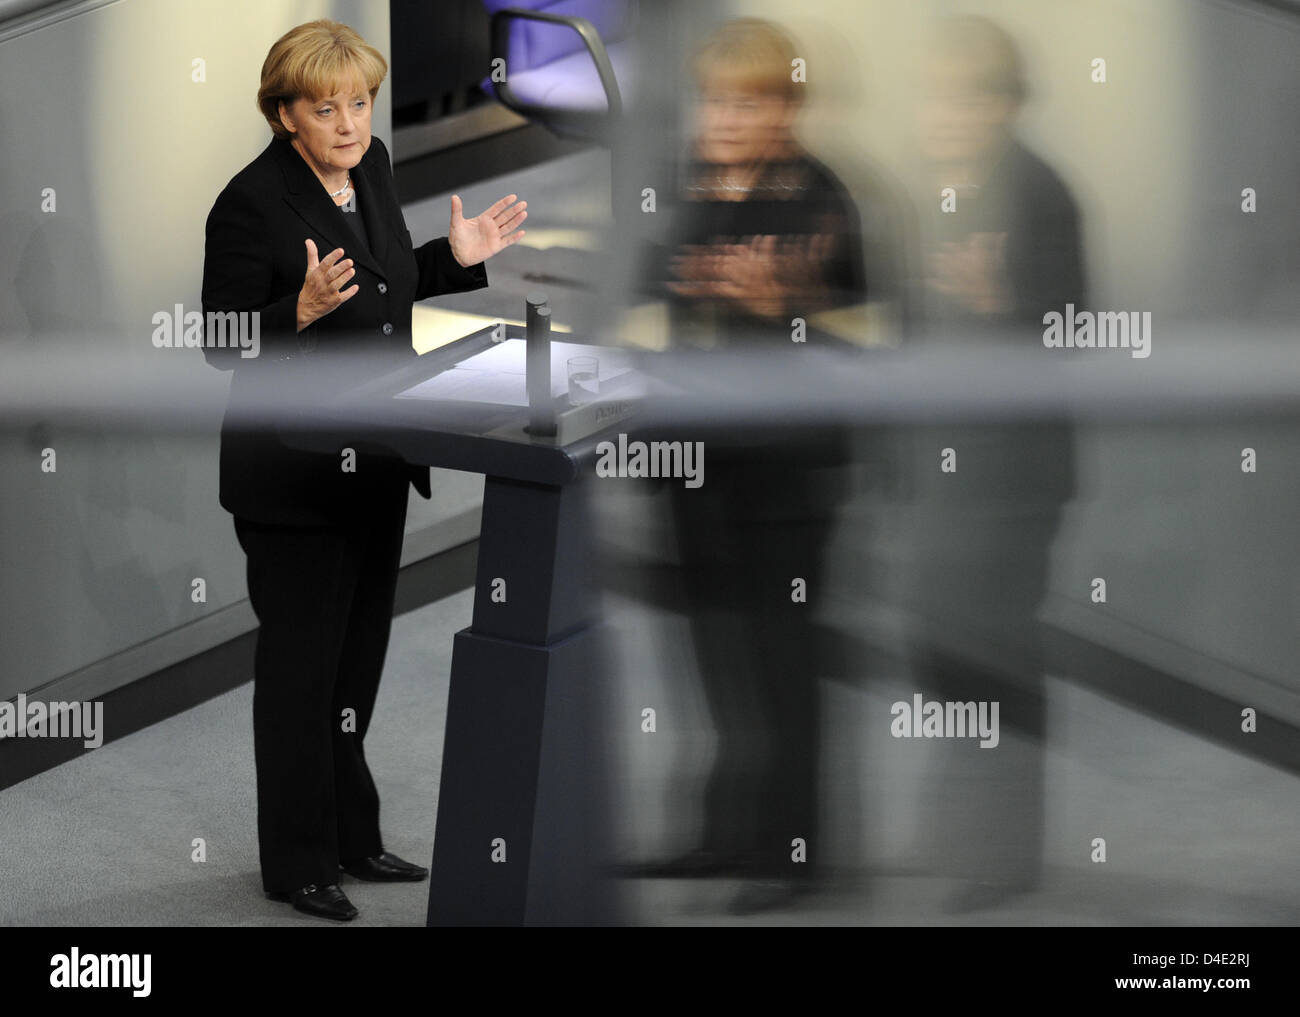 German Chancellor Angela Merkel delivers a government declaration on the global financial crisis at the Bundestag, Berlin, Germany, 7 October 2008. Photo: RAINER JENSEN Stock Photo